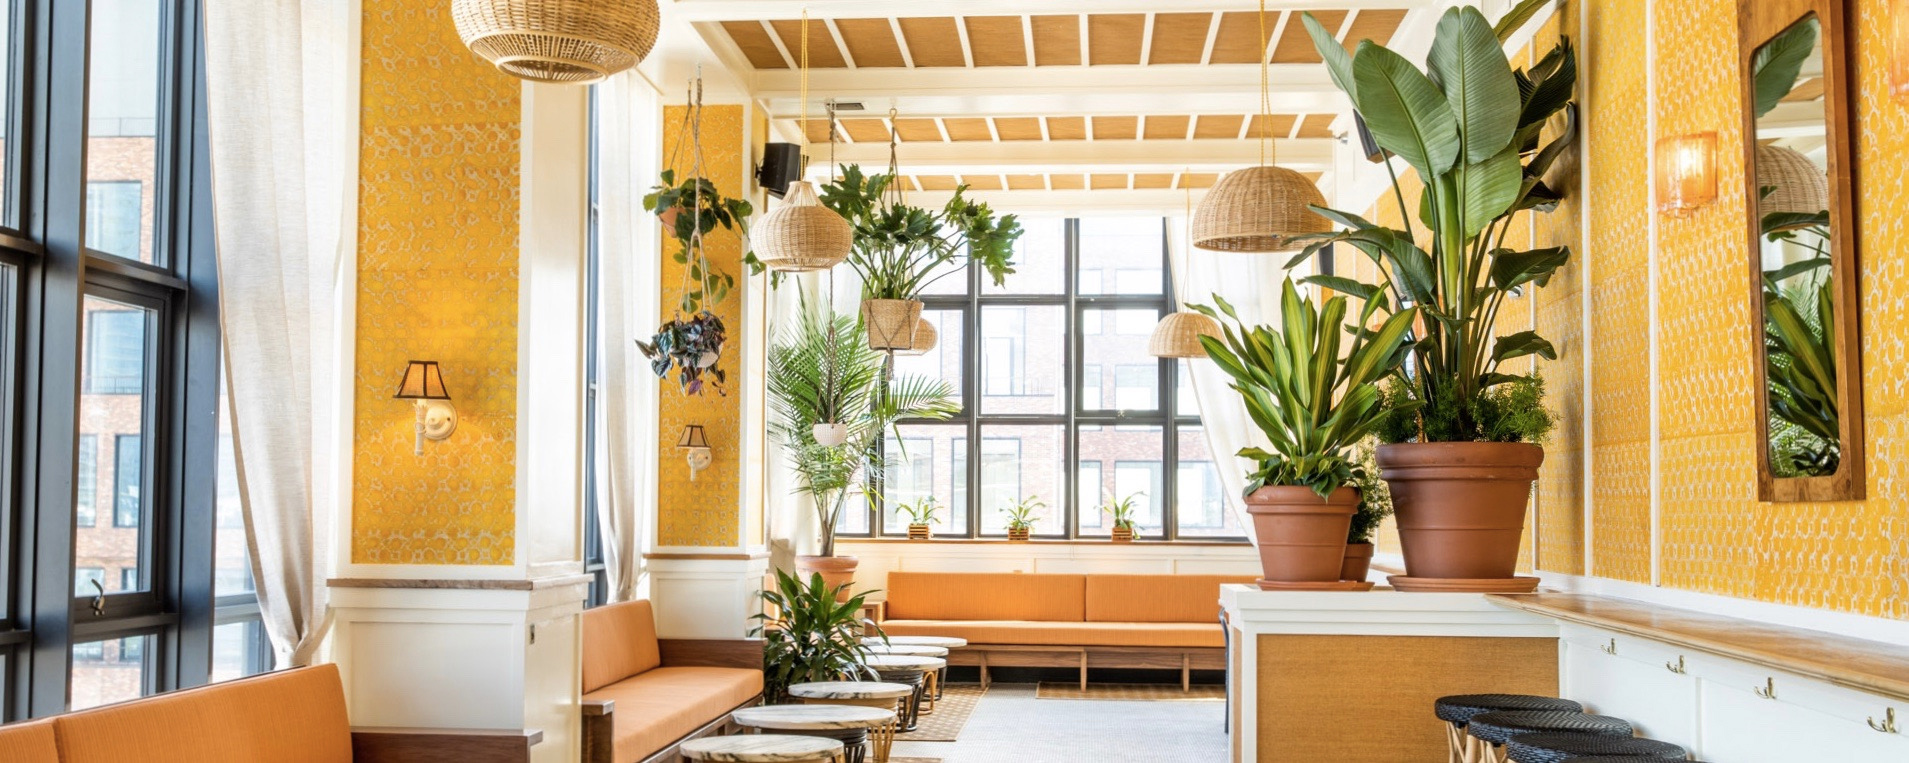 8 of our favourite New York rooftop bars this summer: Lemon's rooftop bar at the Wythe Hotel in Brooklyn